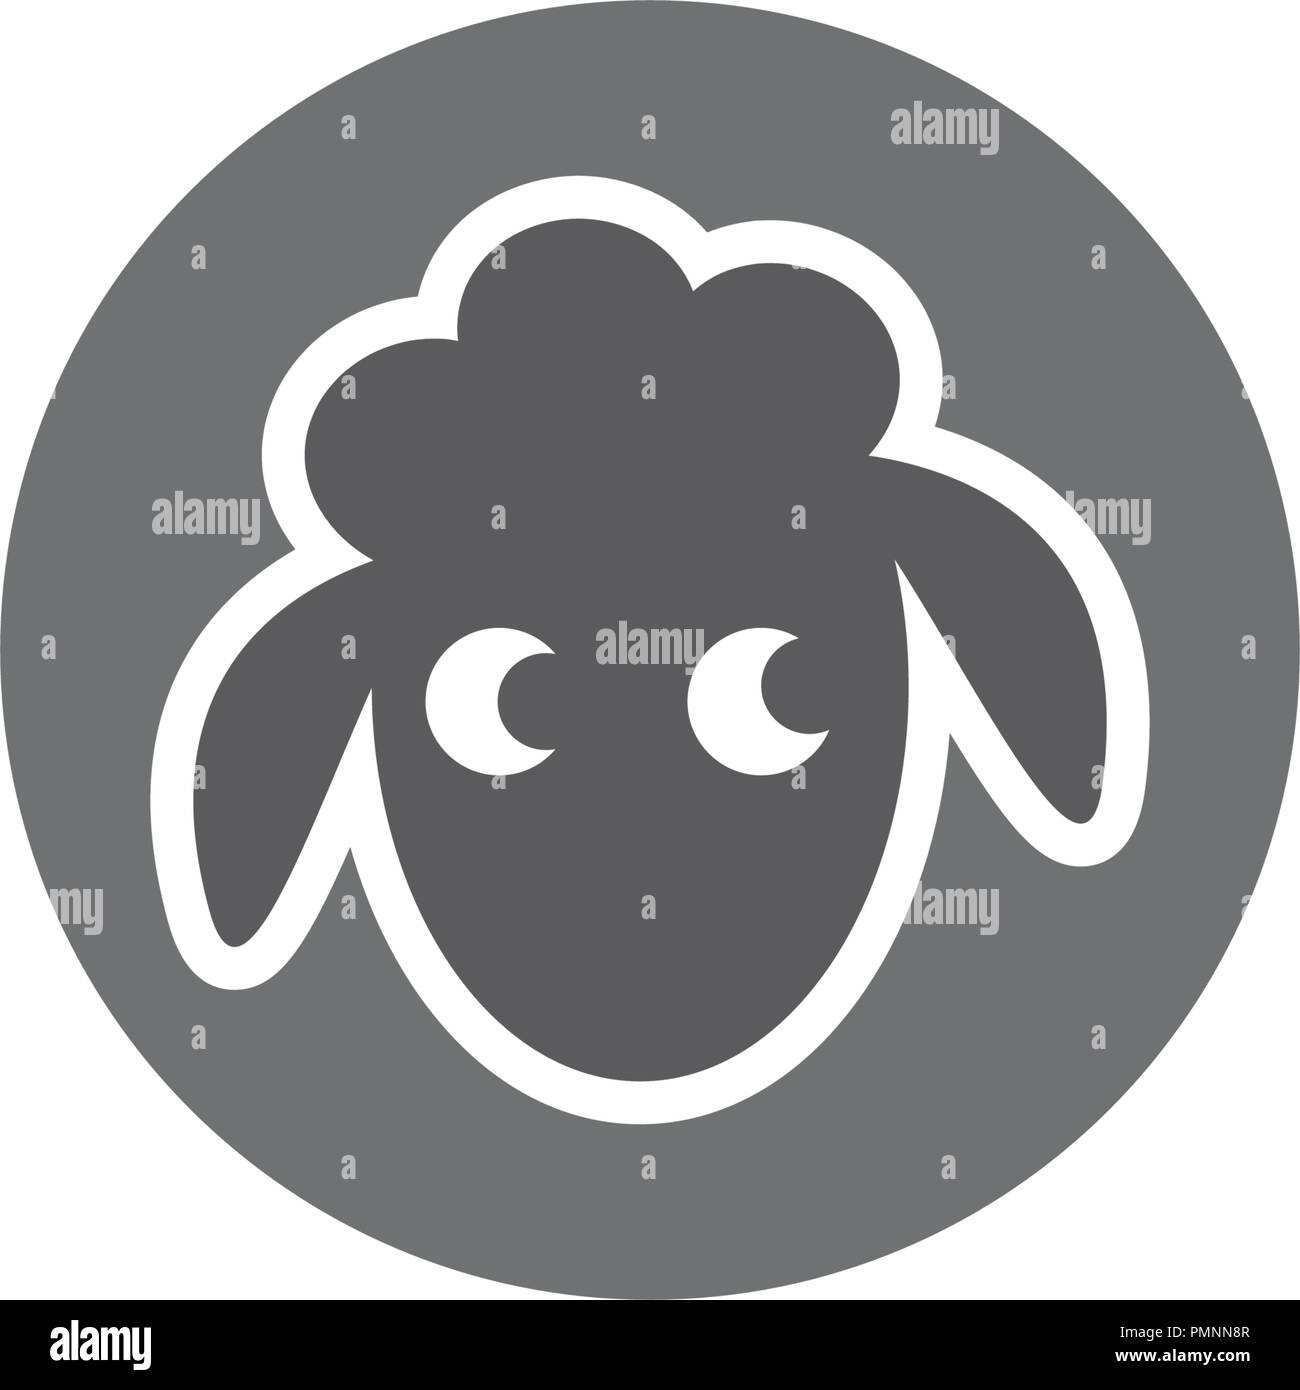 Sheep vector icon logo silhouette illustration - Stock Vector